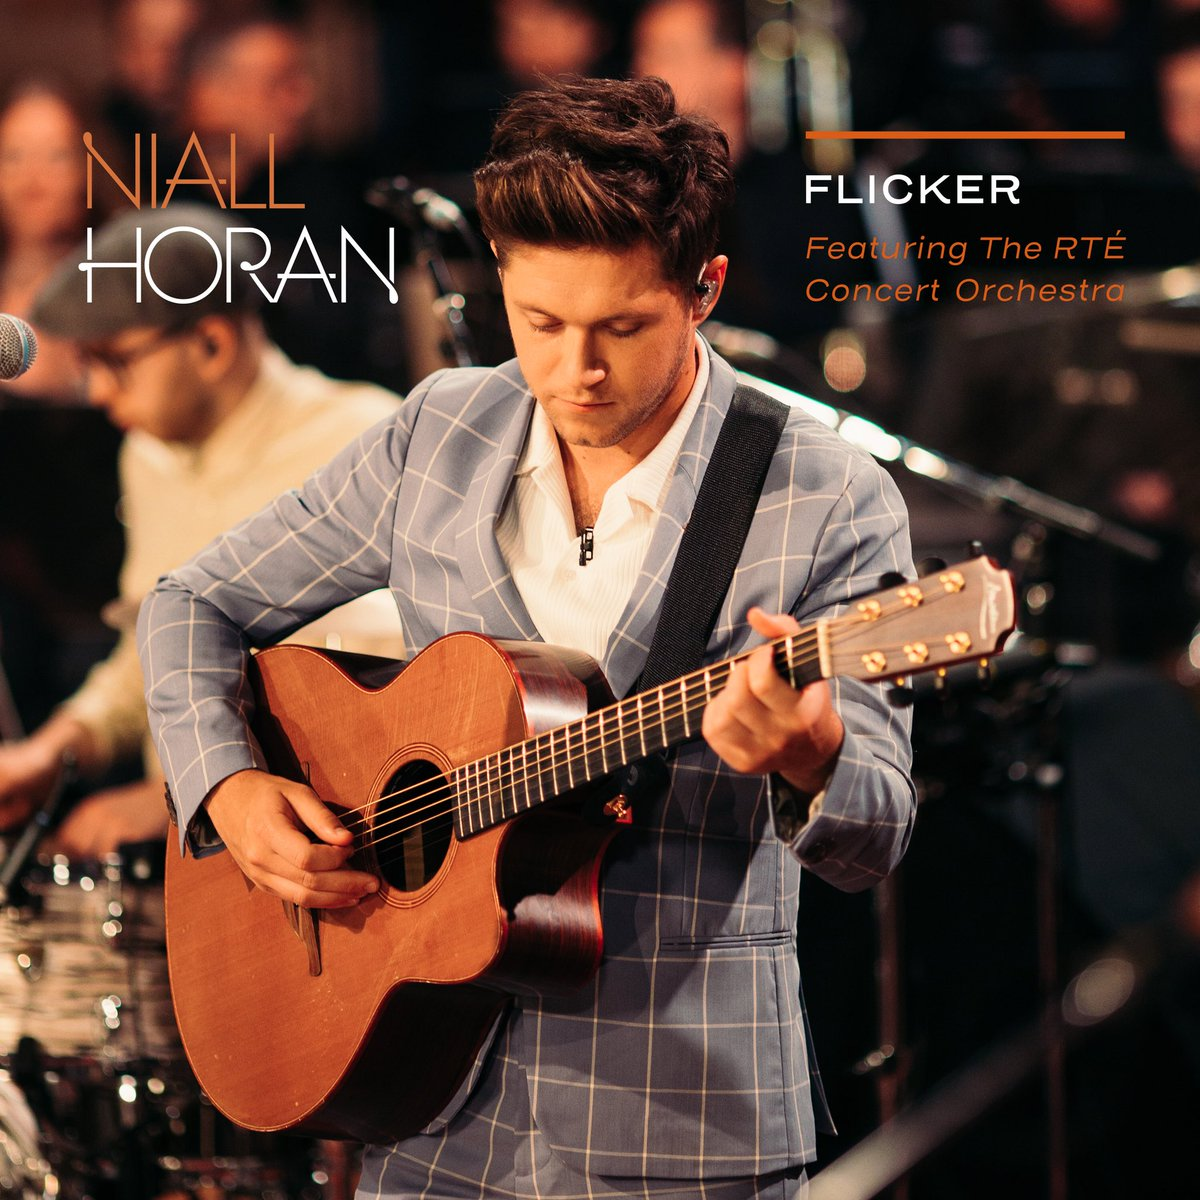 niallhorandownloadflicker